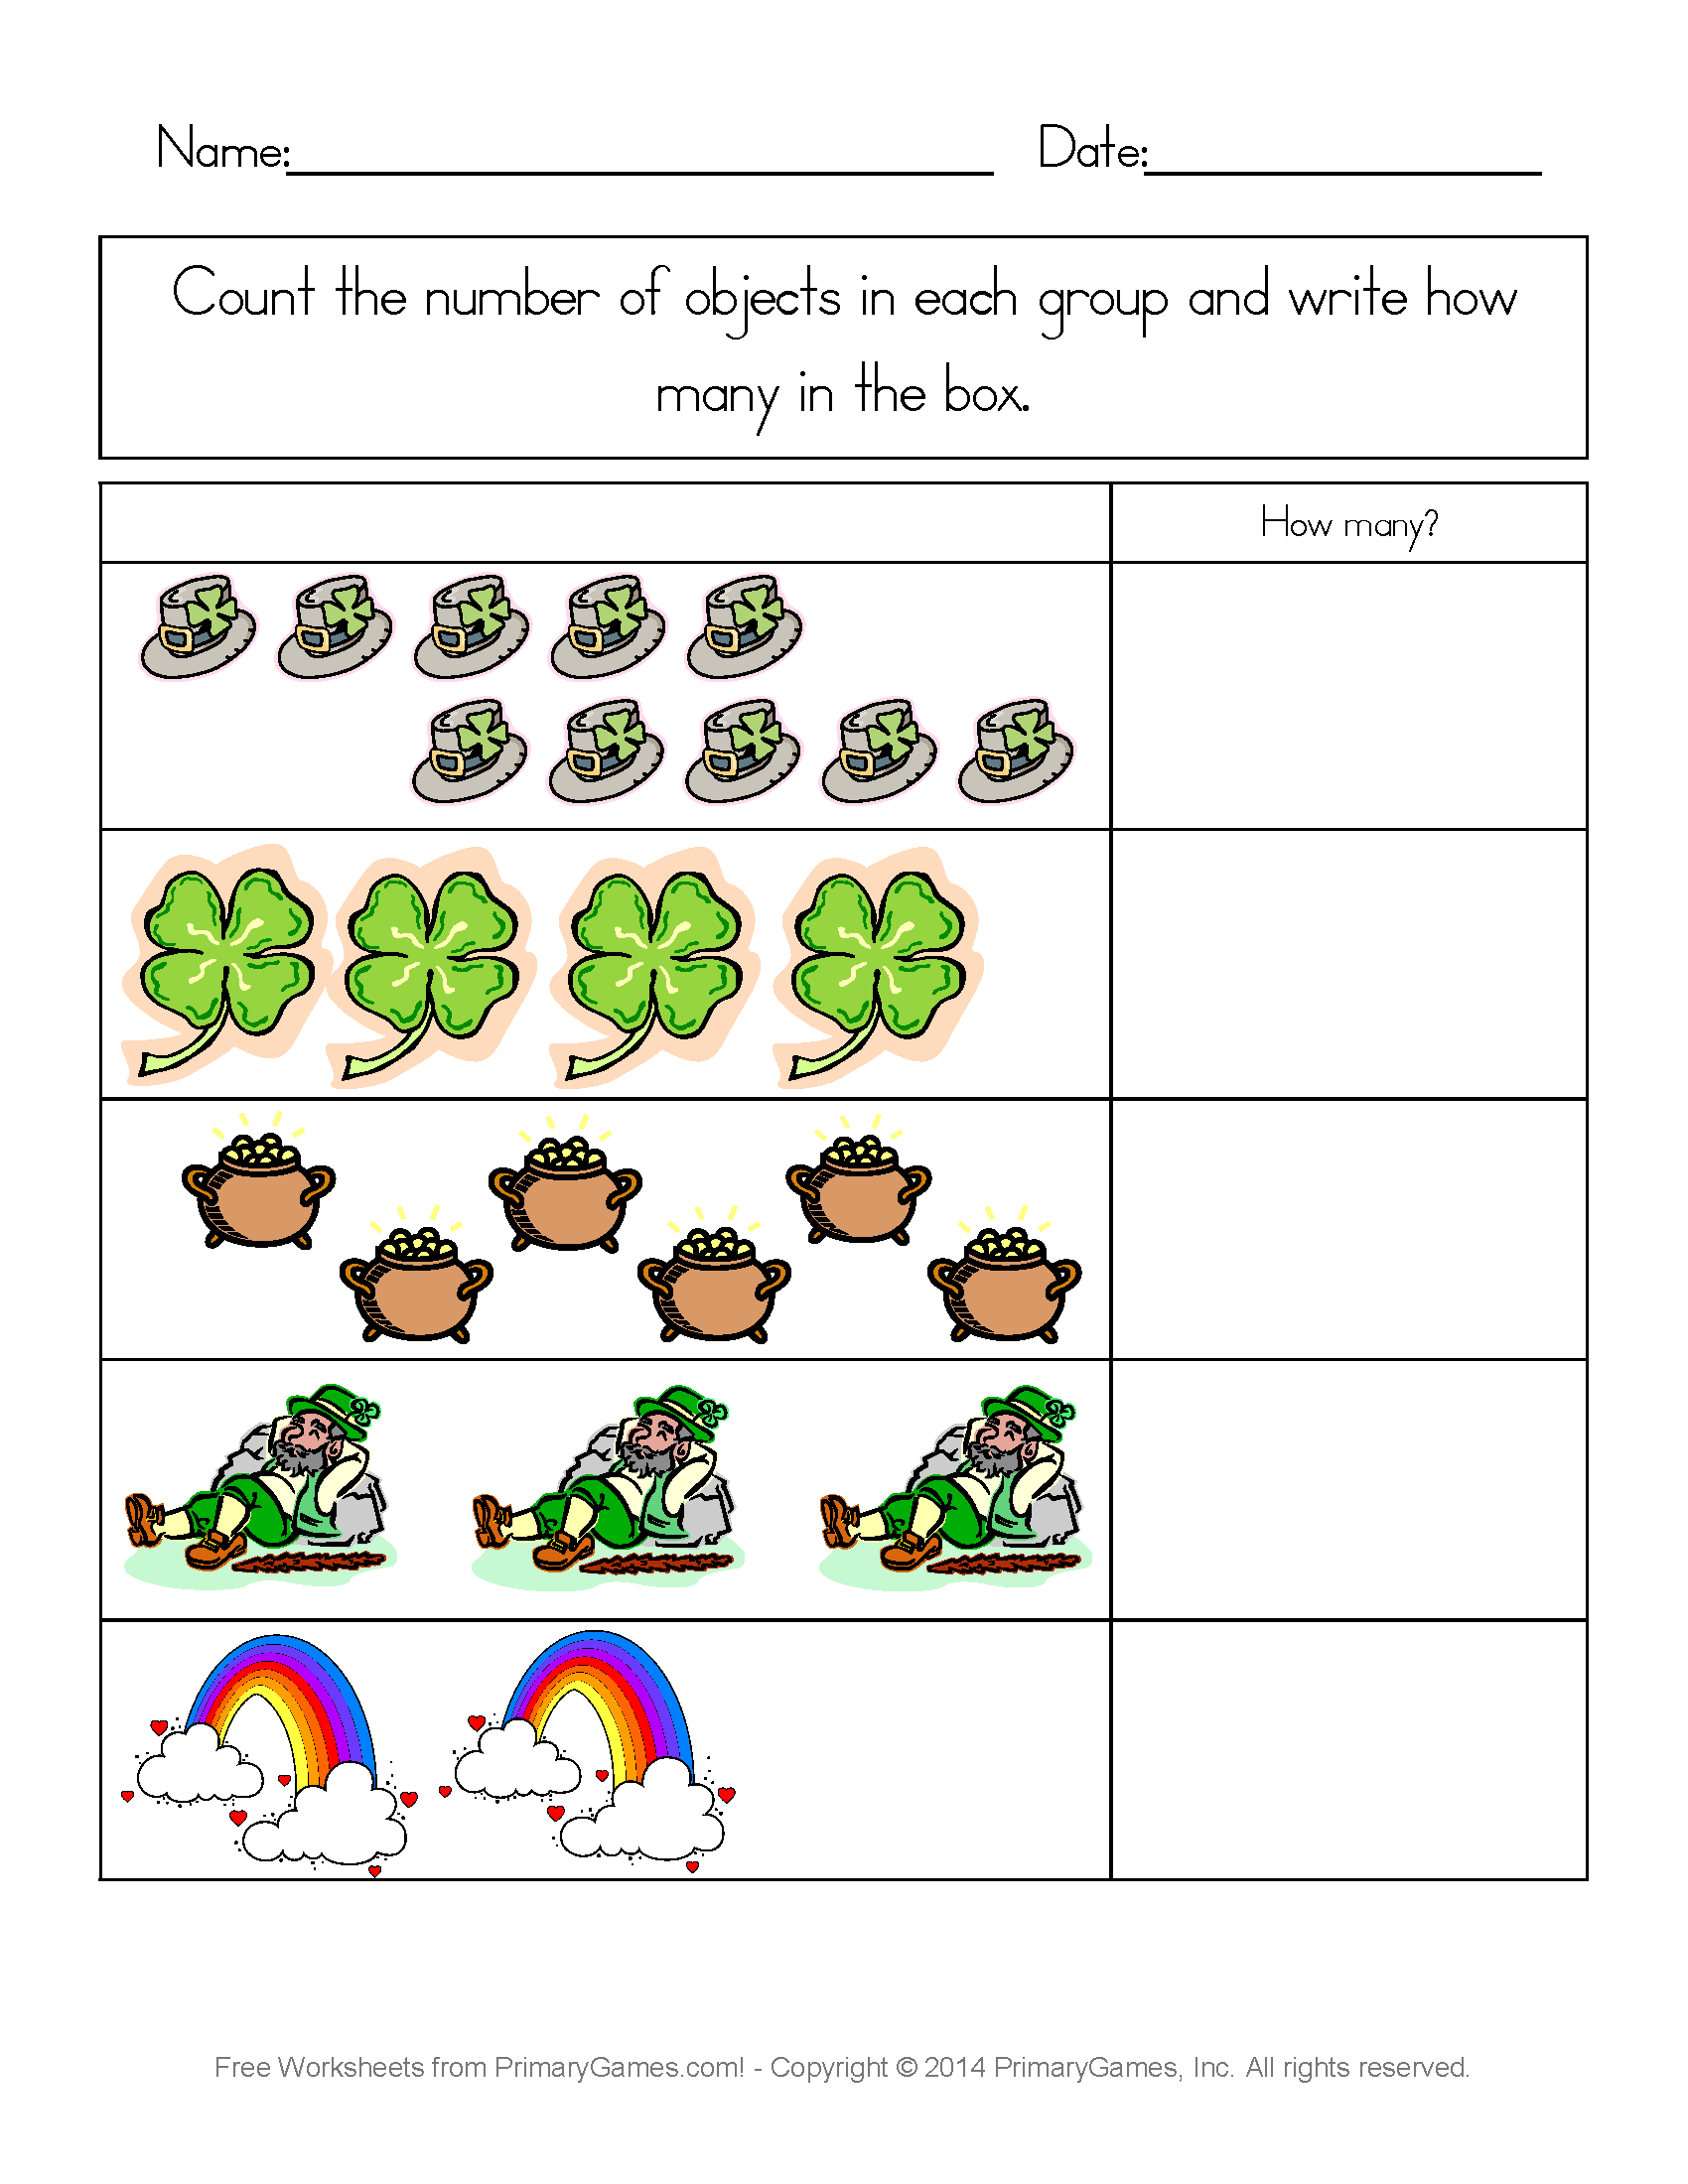 Worksheets Counting Practice Worksheets st patricks day worksheets counting practice primarygames play free online games